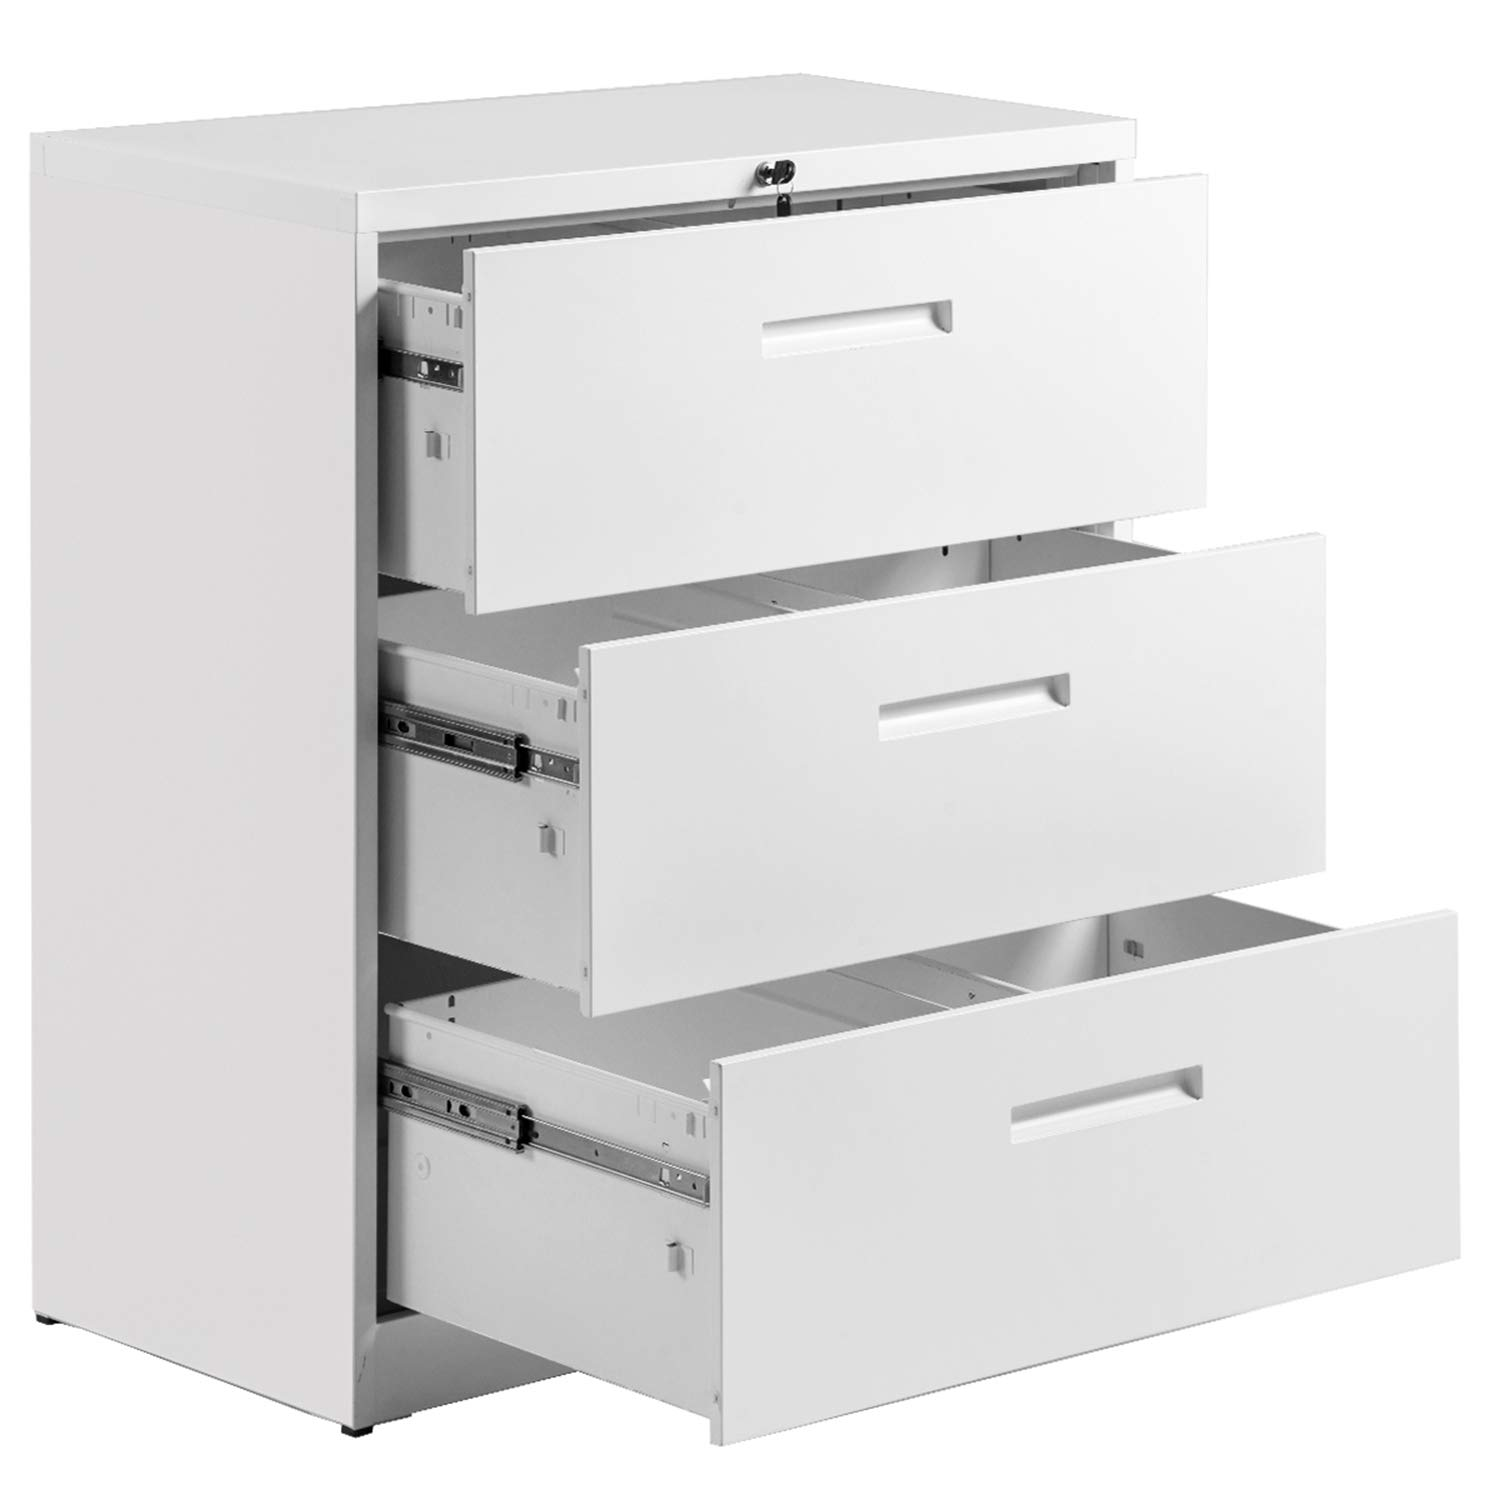 3 Drawer File Cabinet Lockable Heavy Duty Metal File Cabinet Lateral White 35.4'' L ×17.7W ×40.3'' H by P PURLOVE